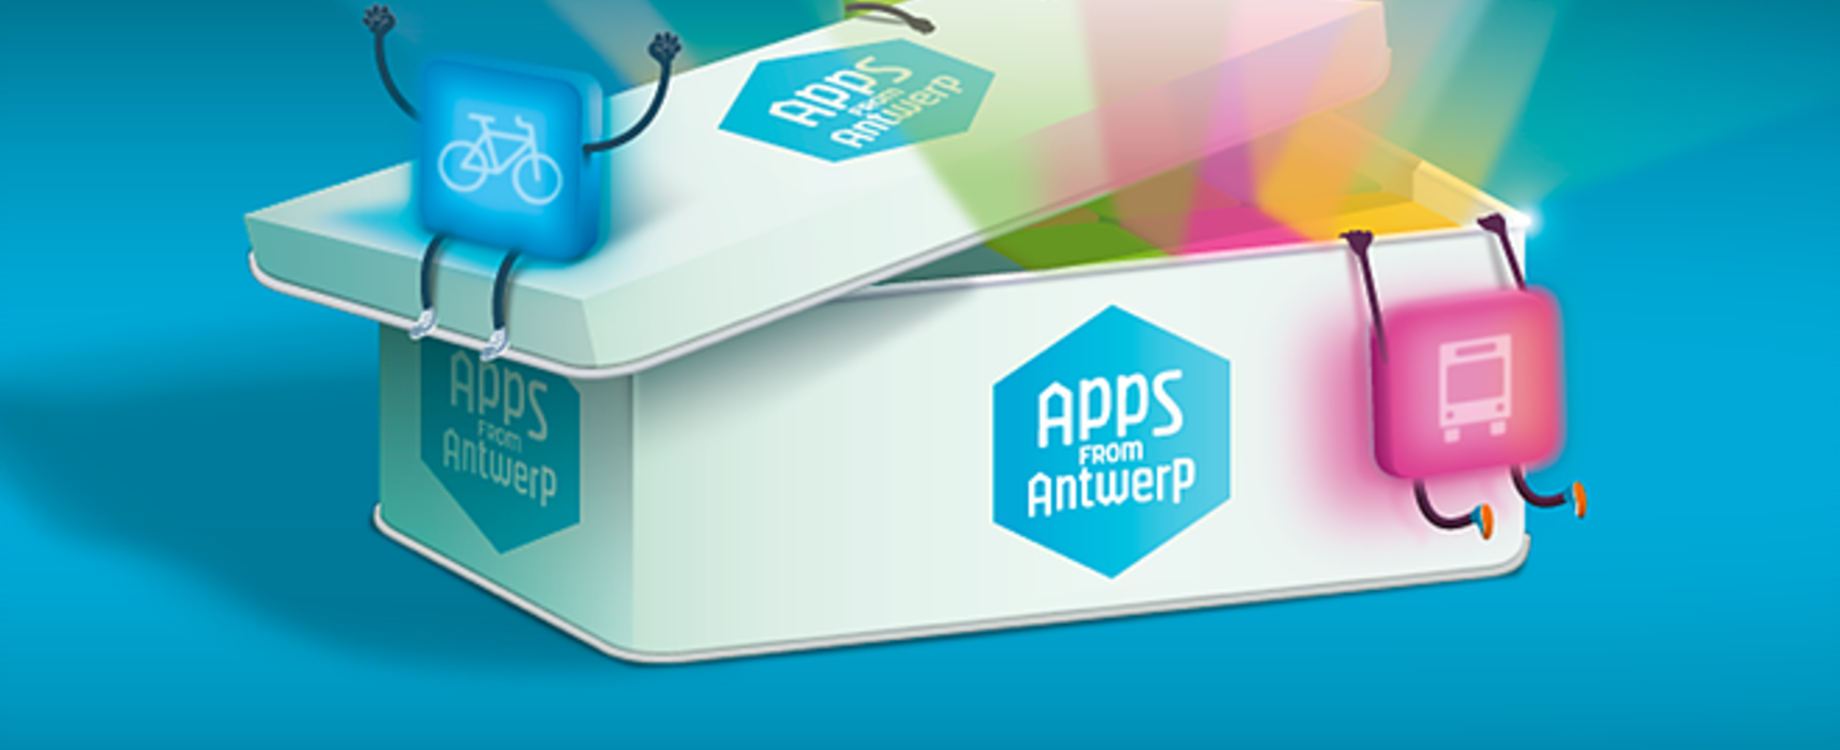 apps from antwerp